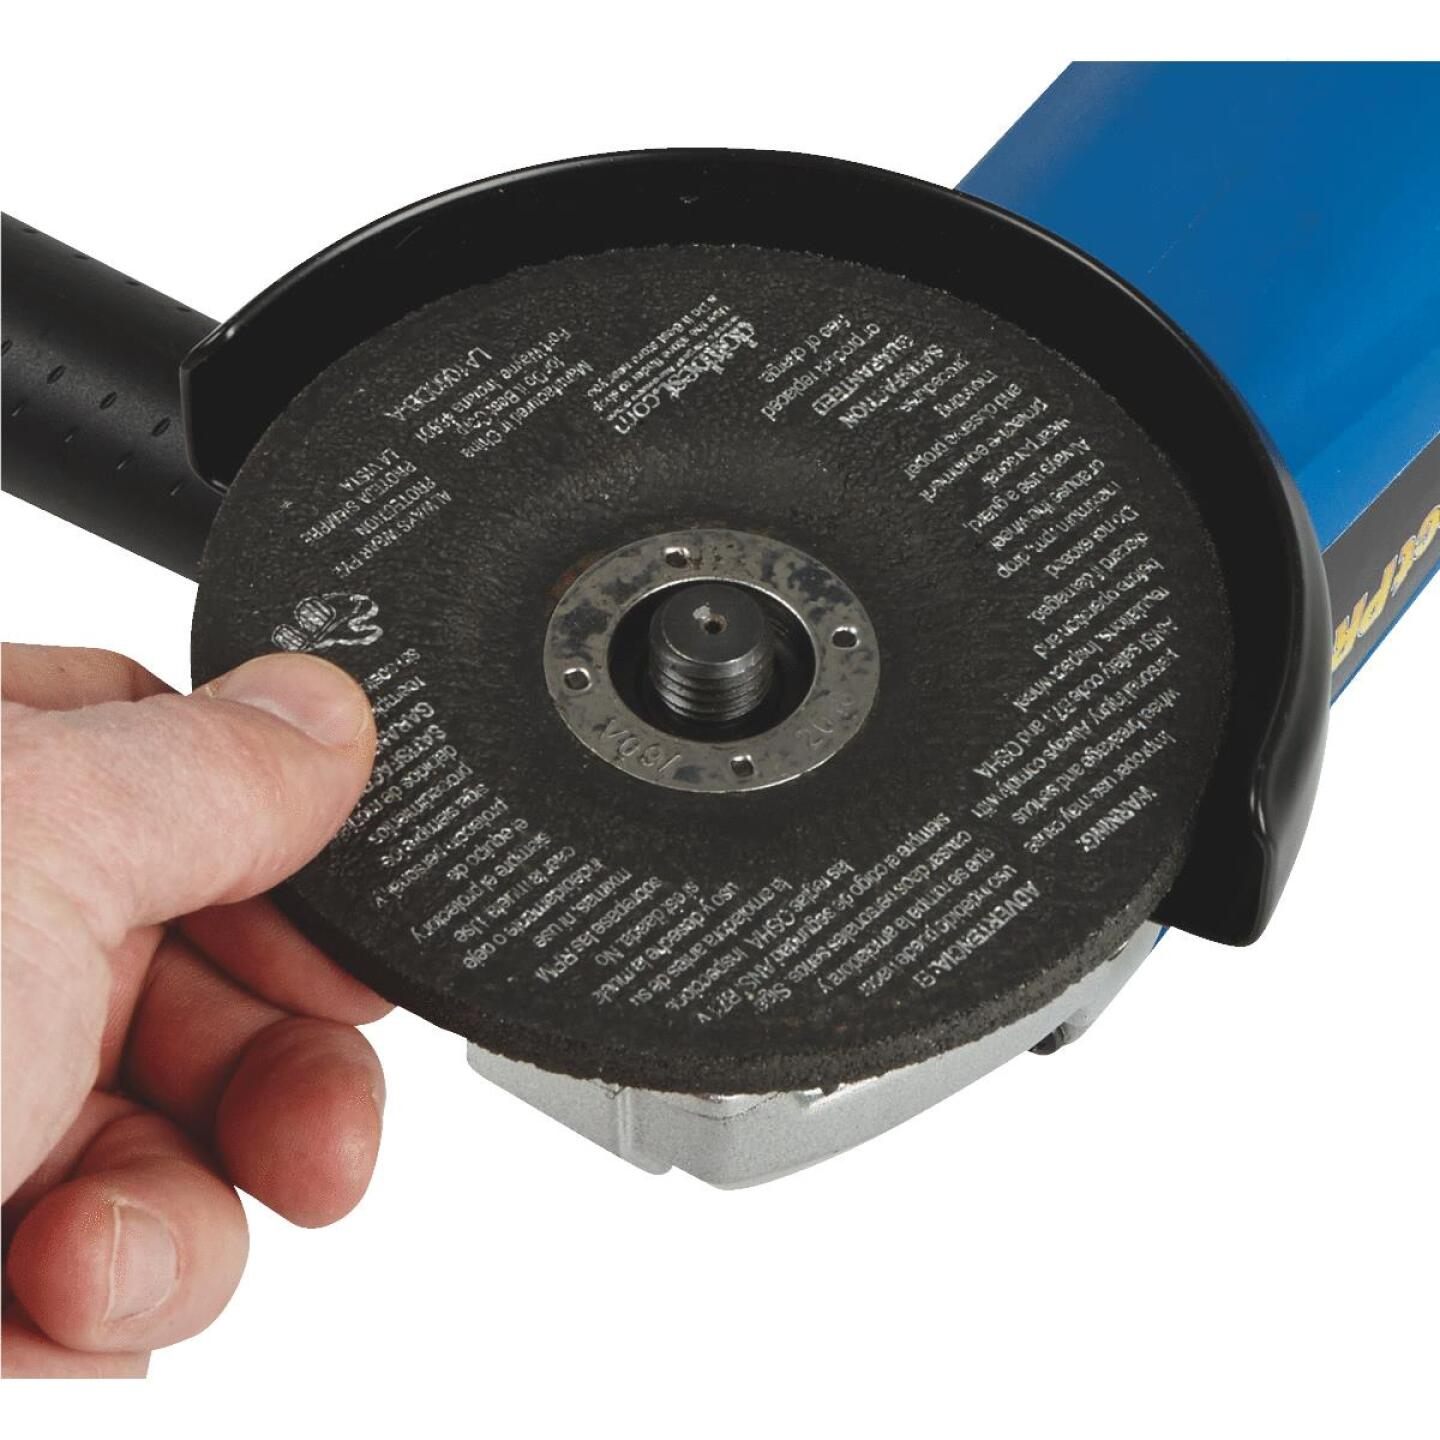 Project Pro 4-1/2 In. 10-Amp Angle Grinder Image 6